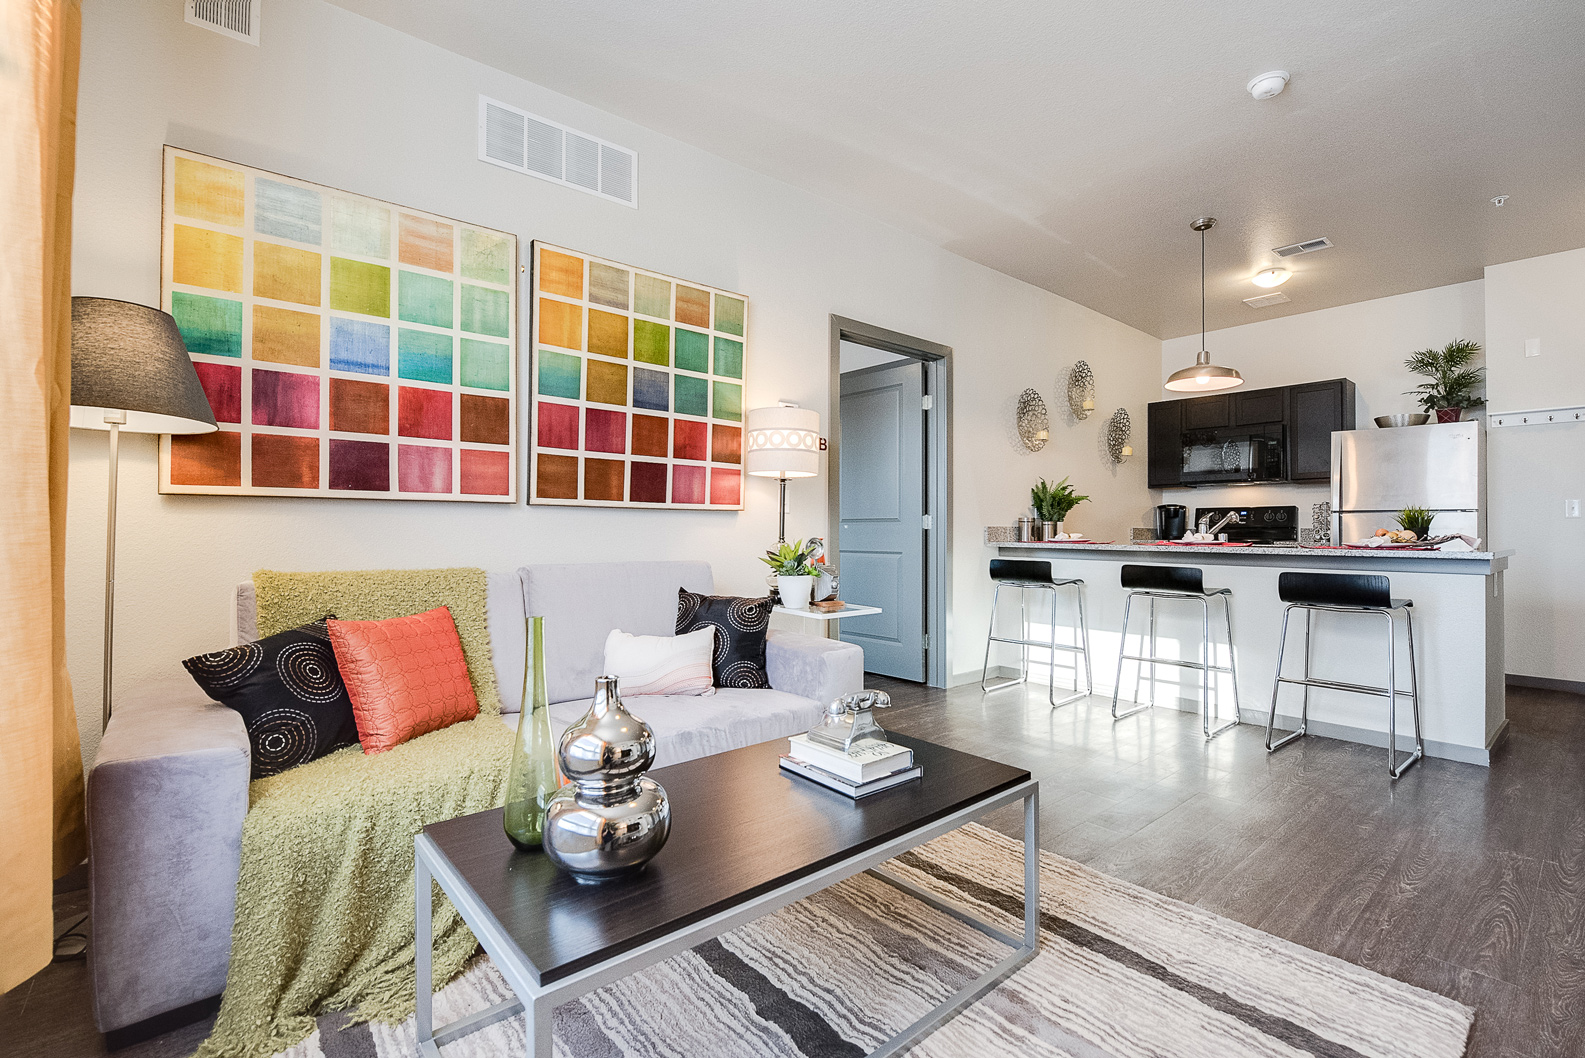 Home Staging for AirBnB, Staged Living Room Minneapolis #117 ~ Staged by Lionheart